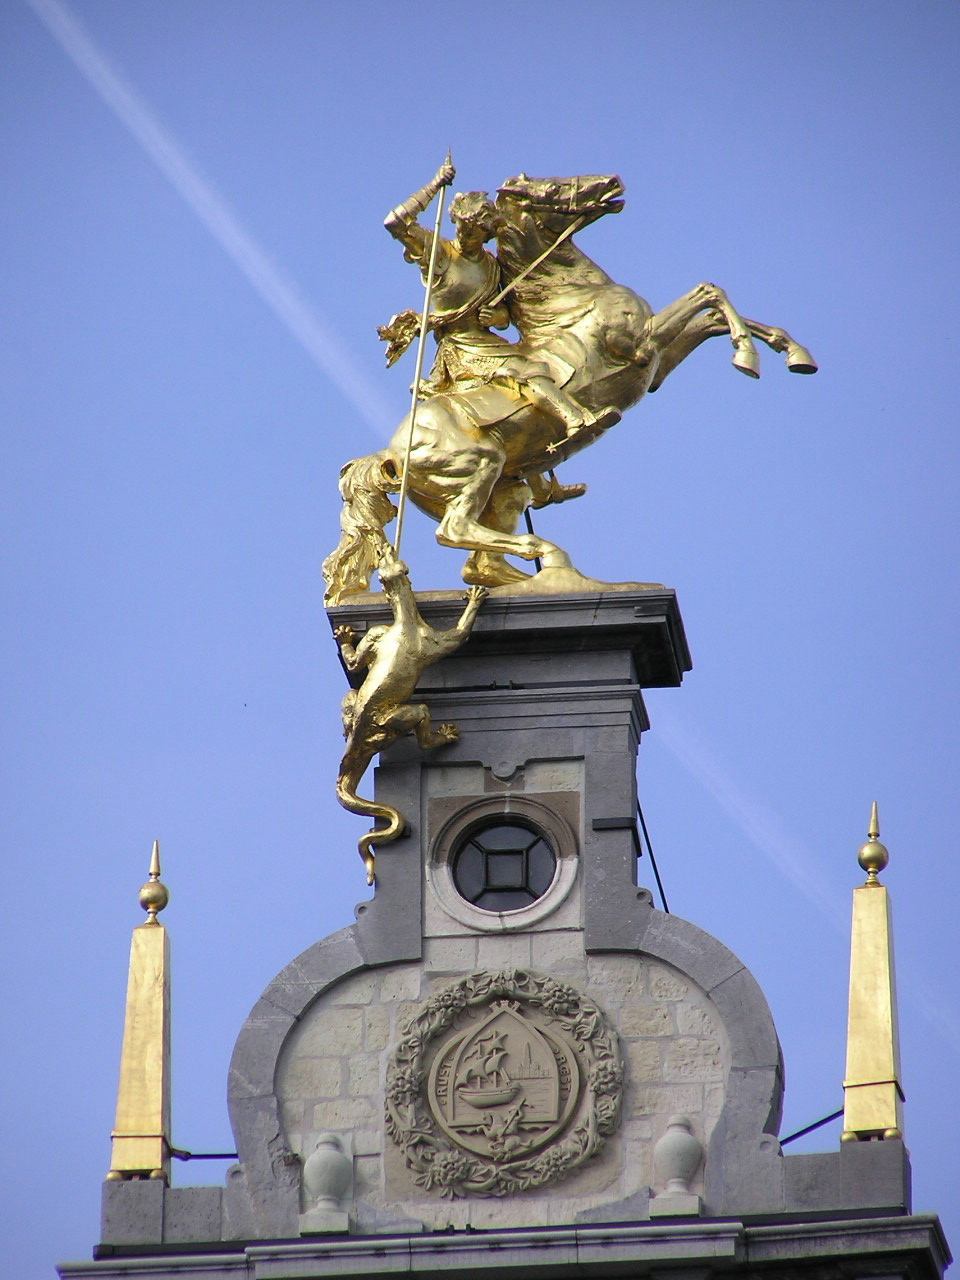 Statue of Saint George on top of Grote Markt 7 building, 1893, Jef Lambeaux, Antwerp, Belgium